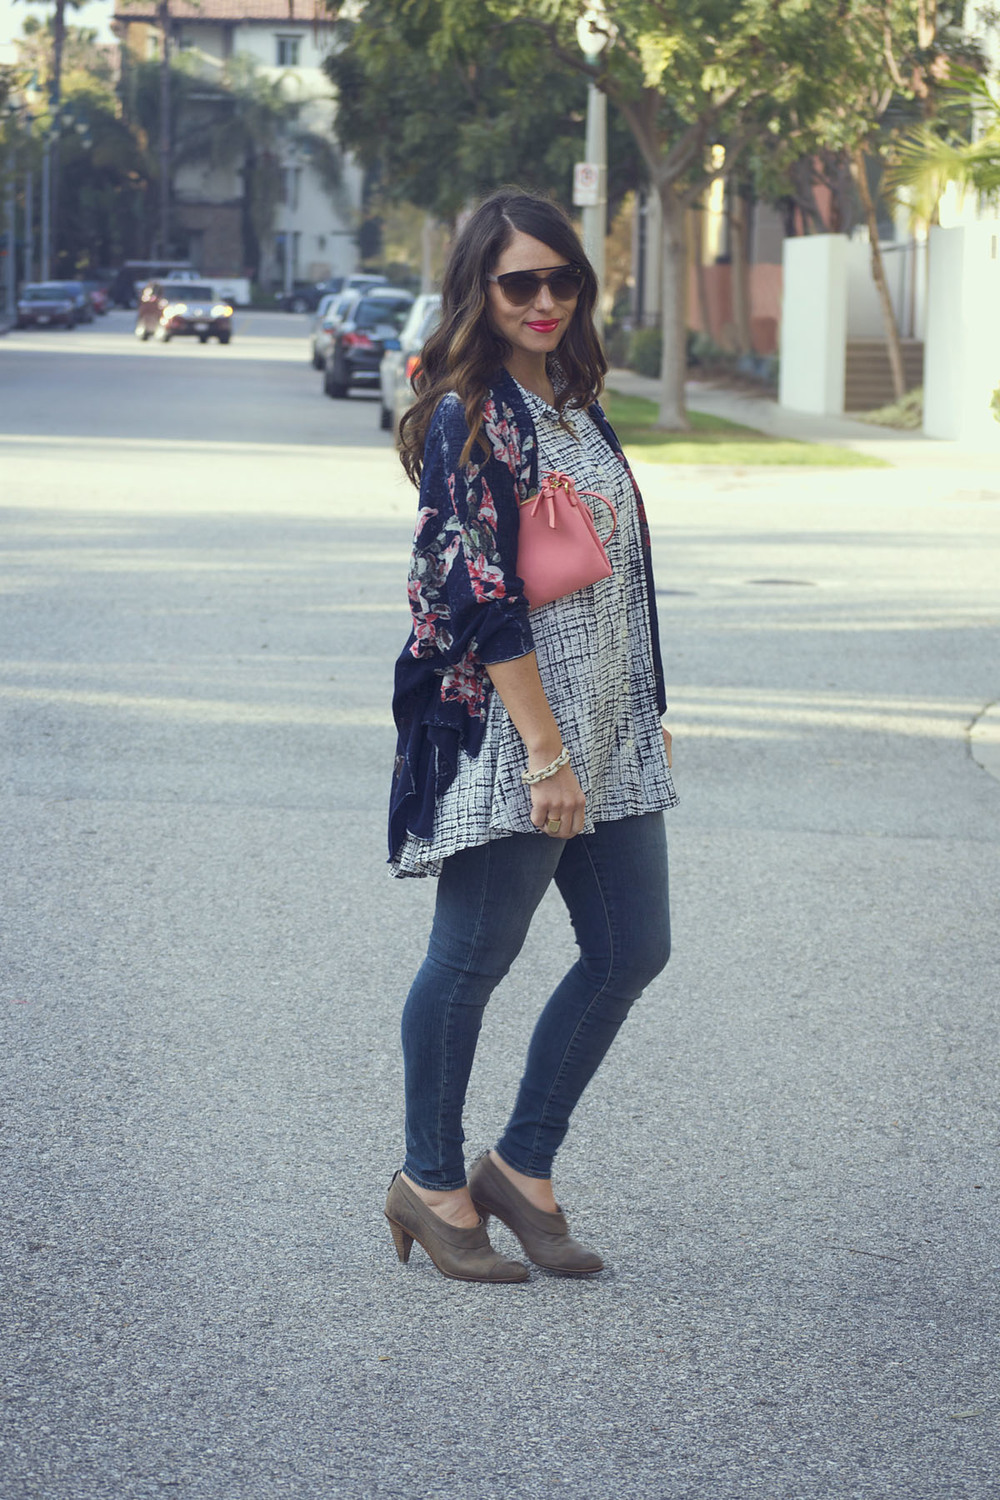 Anthropologie sweater and patterned blouse